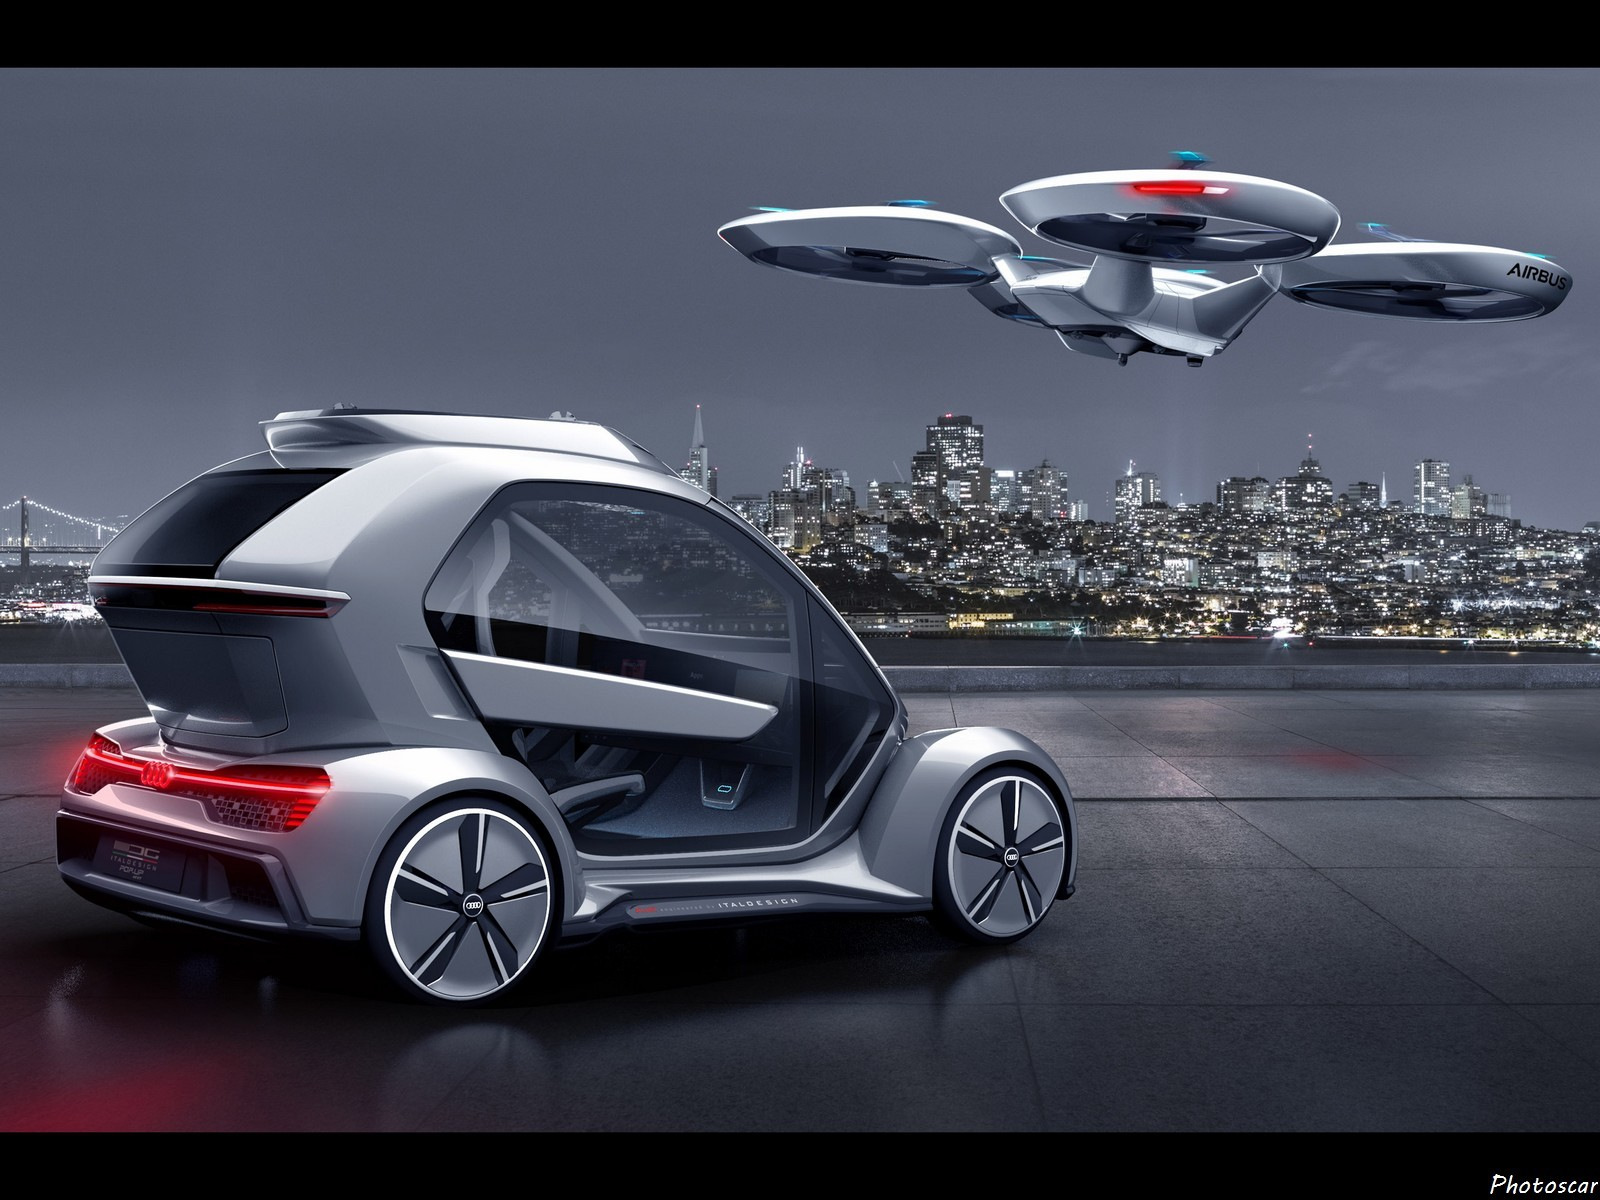 Audi Airbus Pop-Up_Next Italdesign 2018